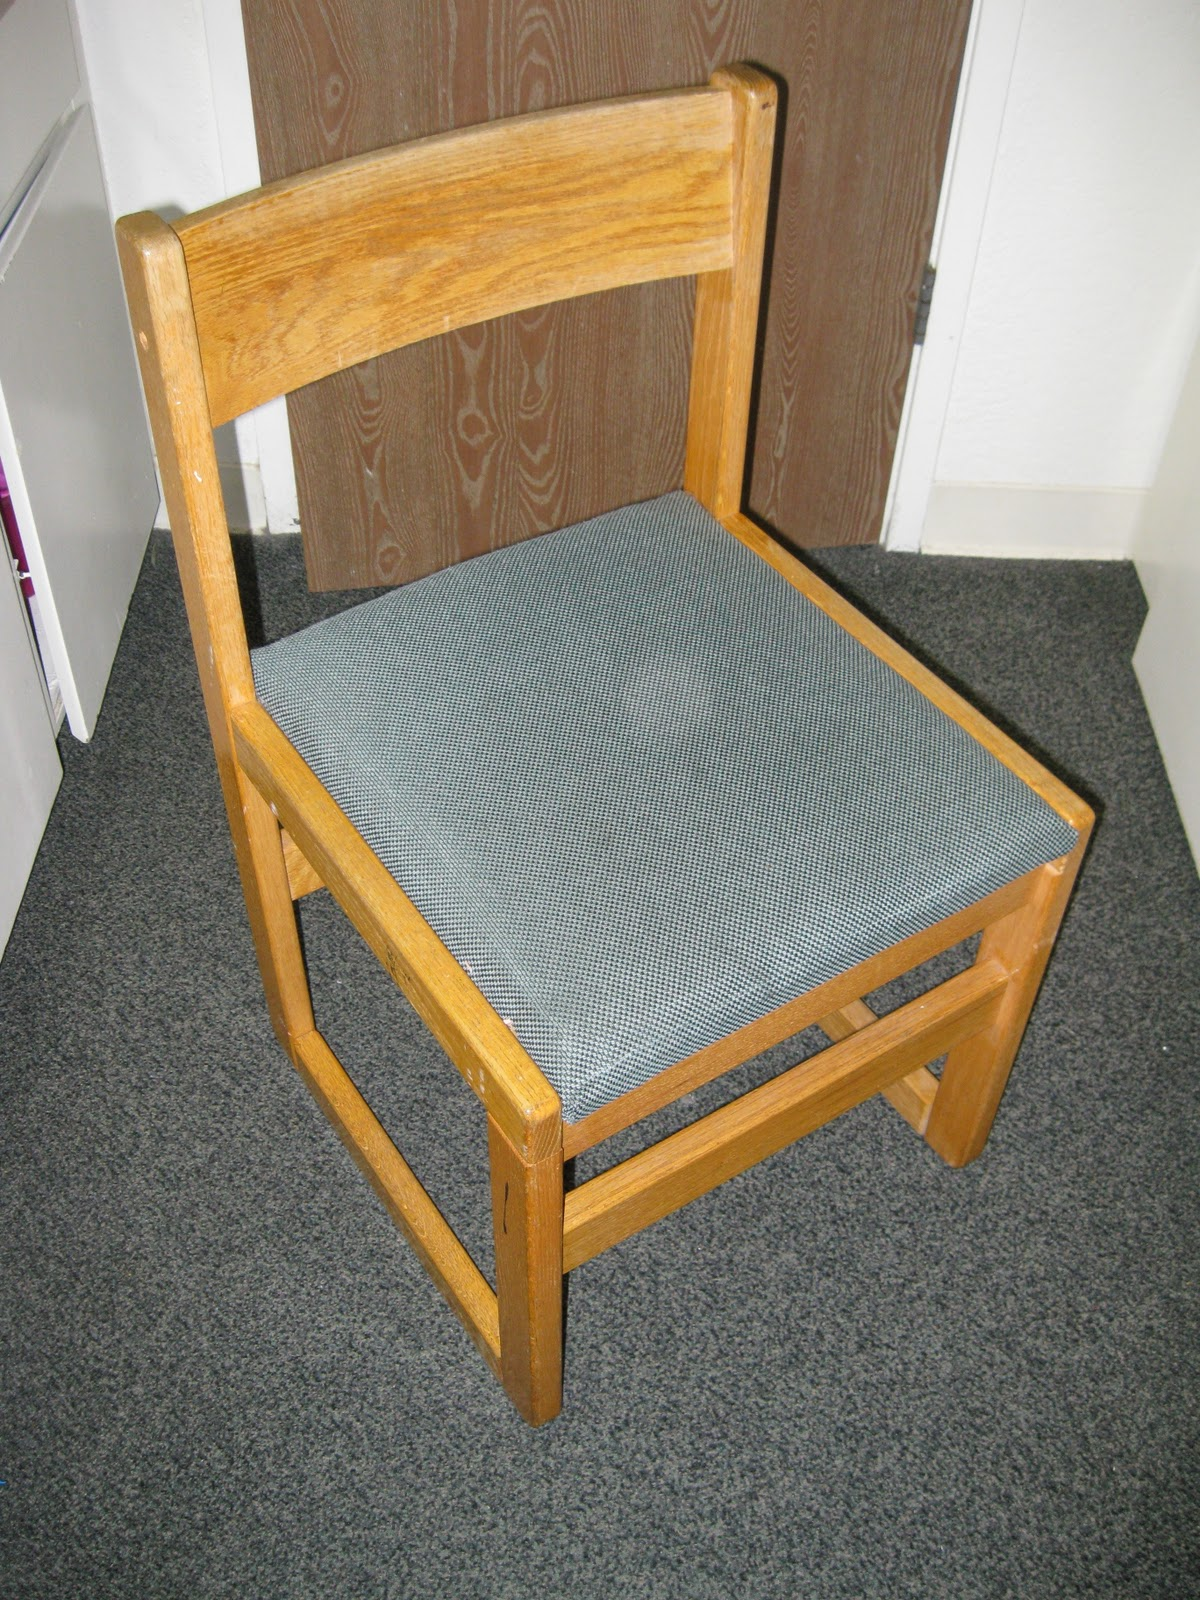 Dorm Chairs Creative By Design 5 Areas Of Ergonomics Dorm Room Desk